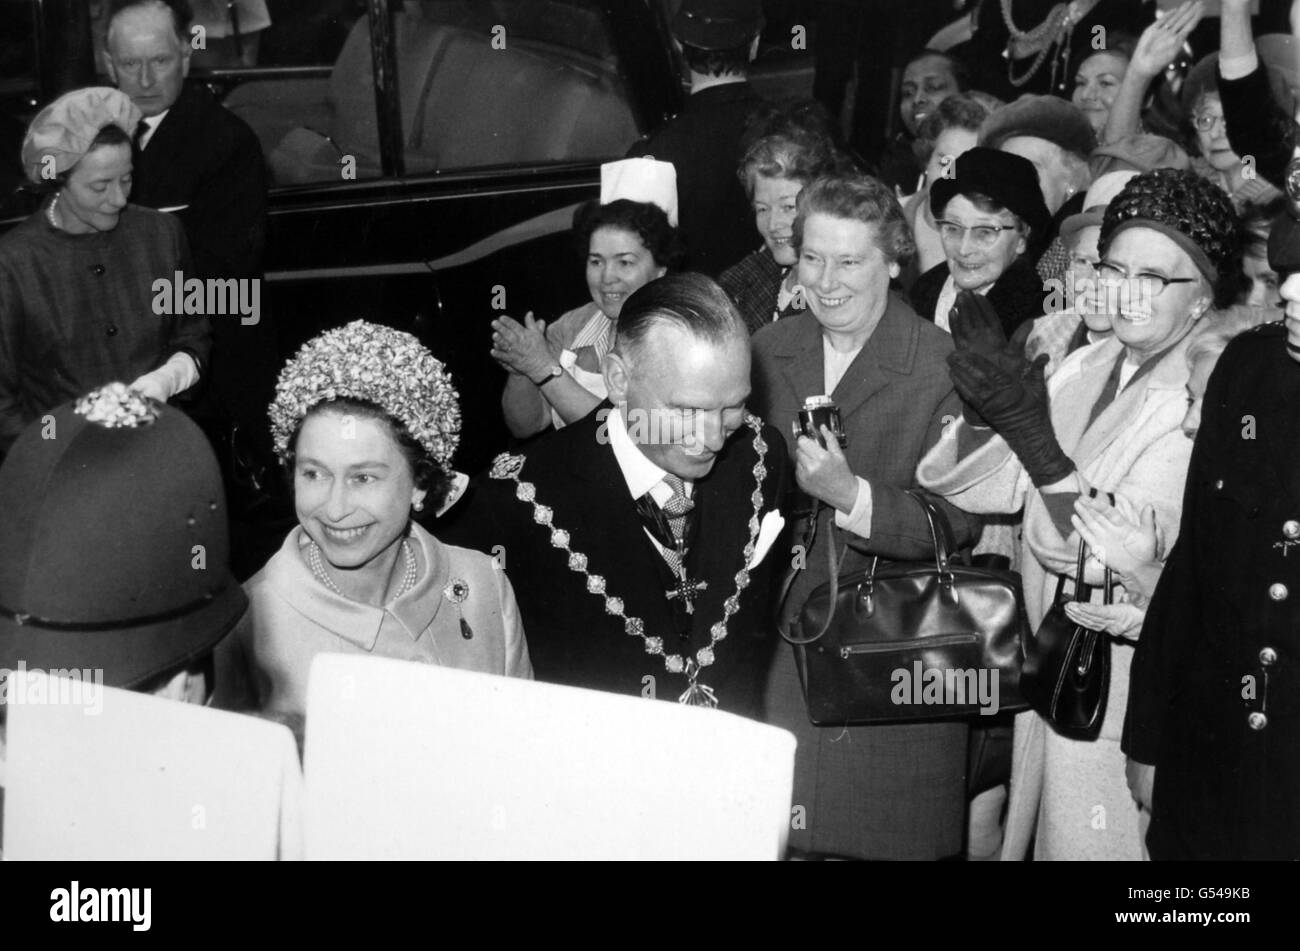 Royalty - Queen Elizabeth II - Charing Cross Hospital, London - Stock Image